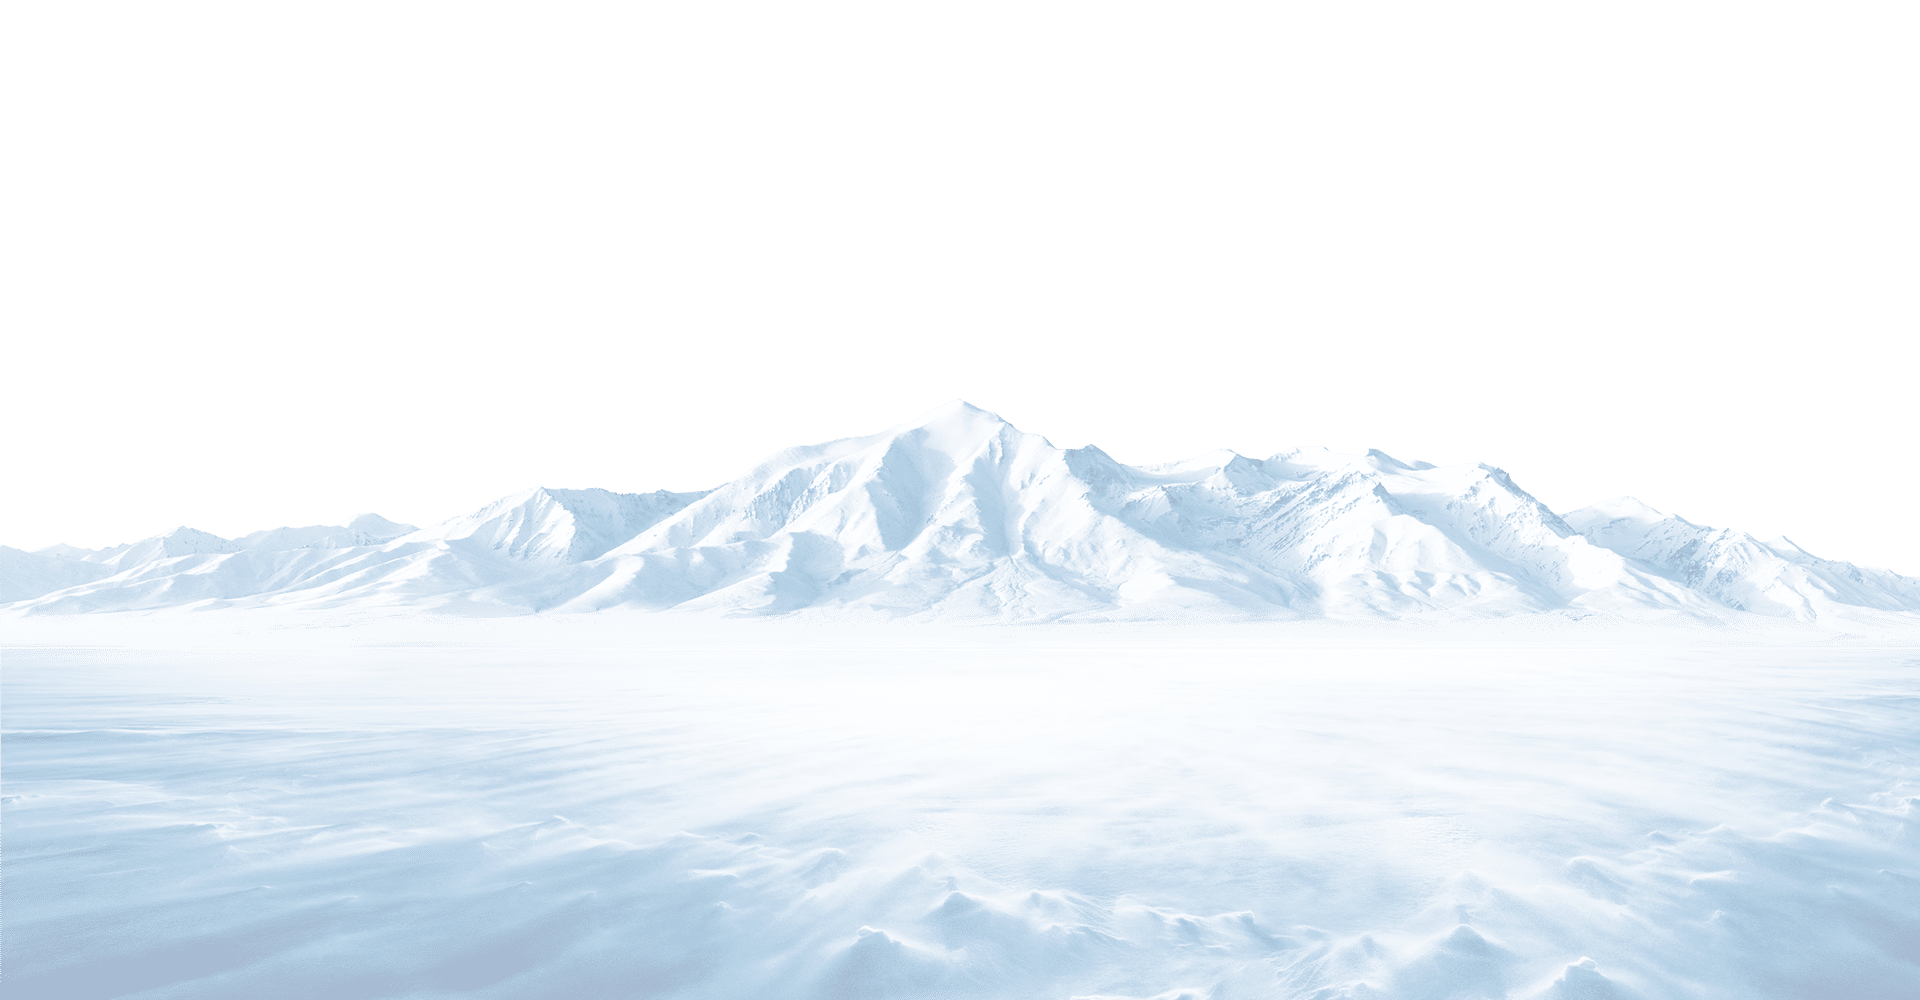 background-mountain-waves-caroline-garin-webdesign